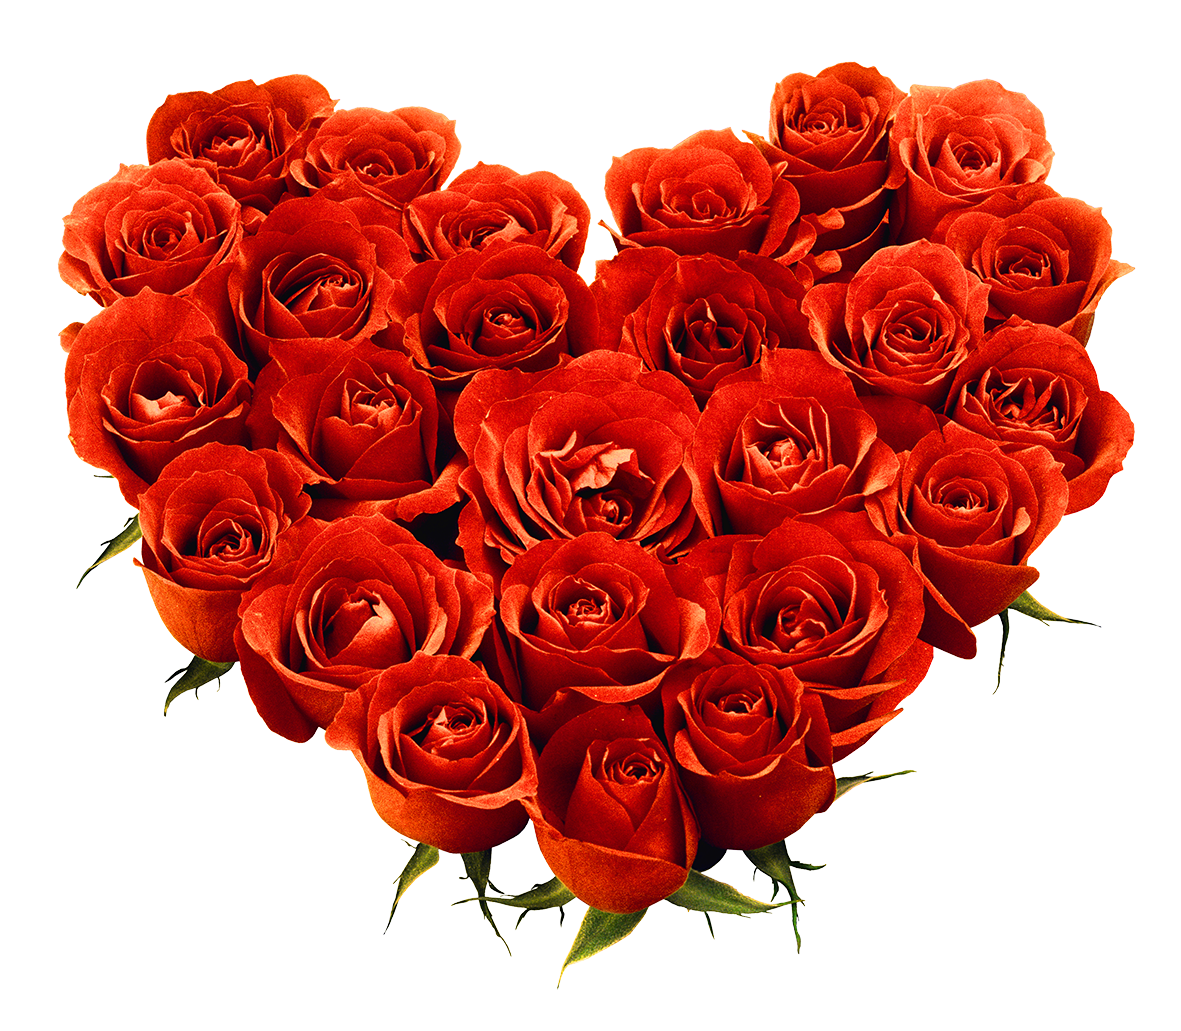 Bouquet Of Roses PNG HD - 142847